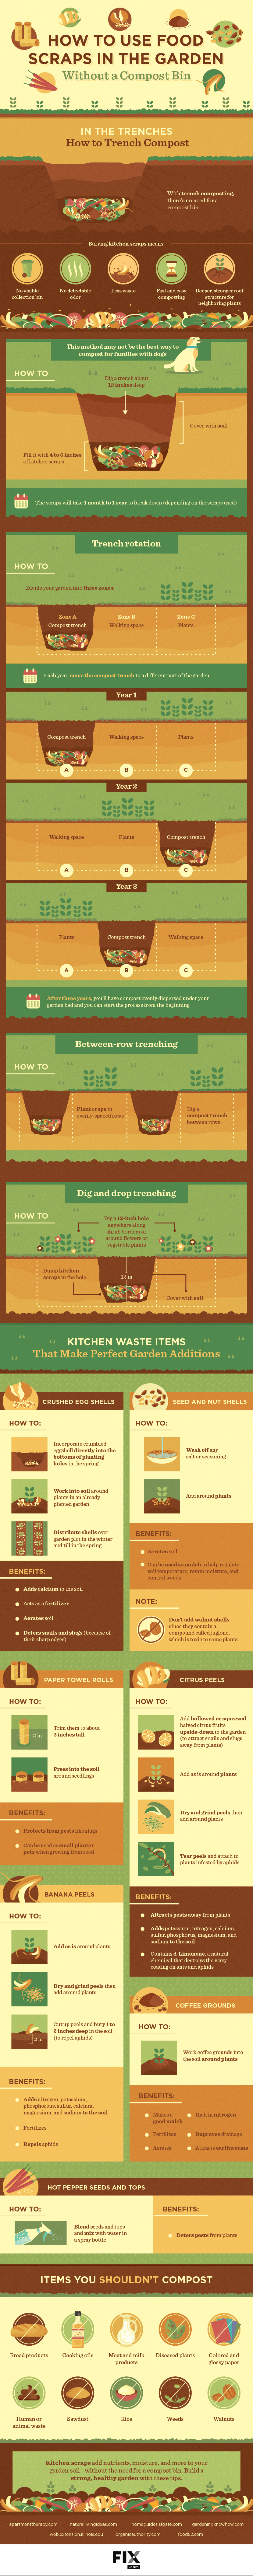 How to use food scraps in the garden - infographic